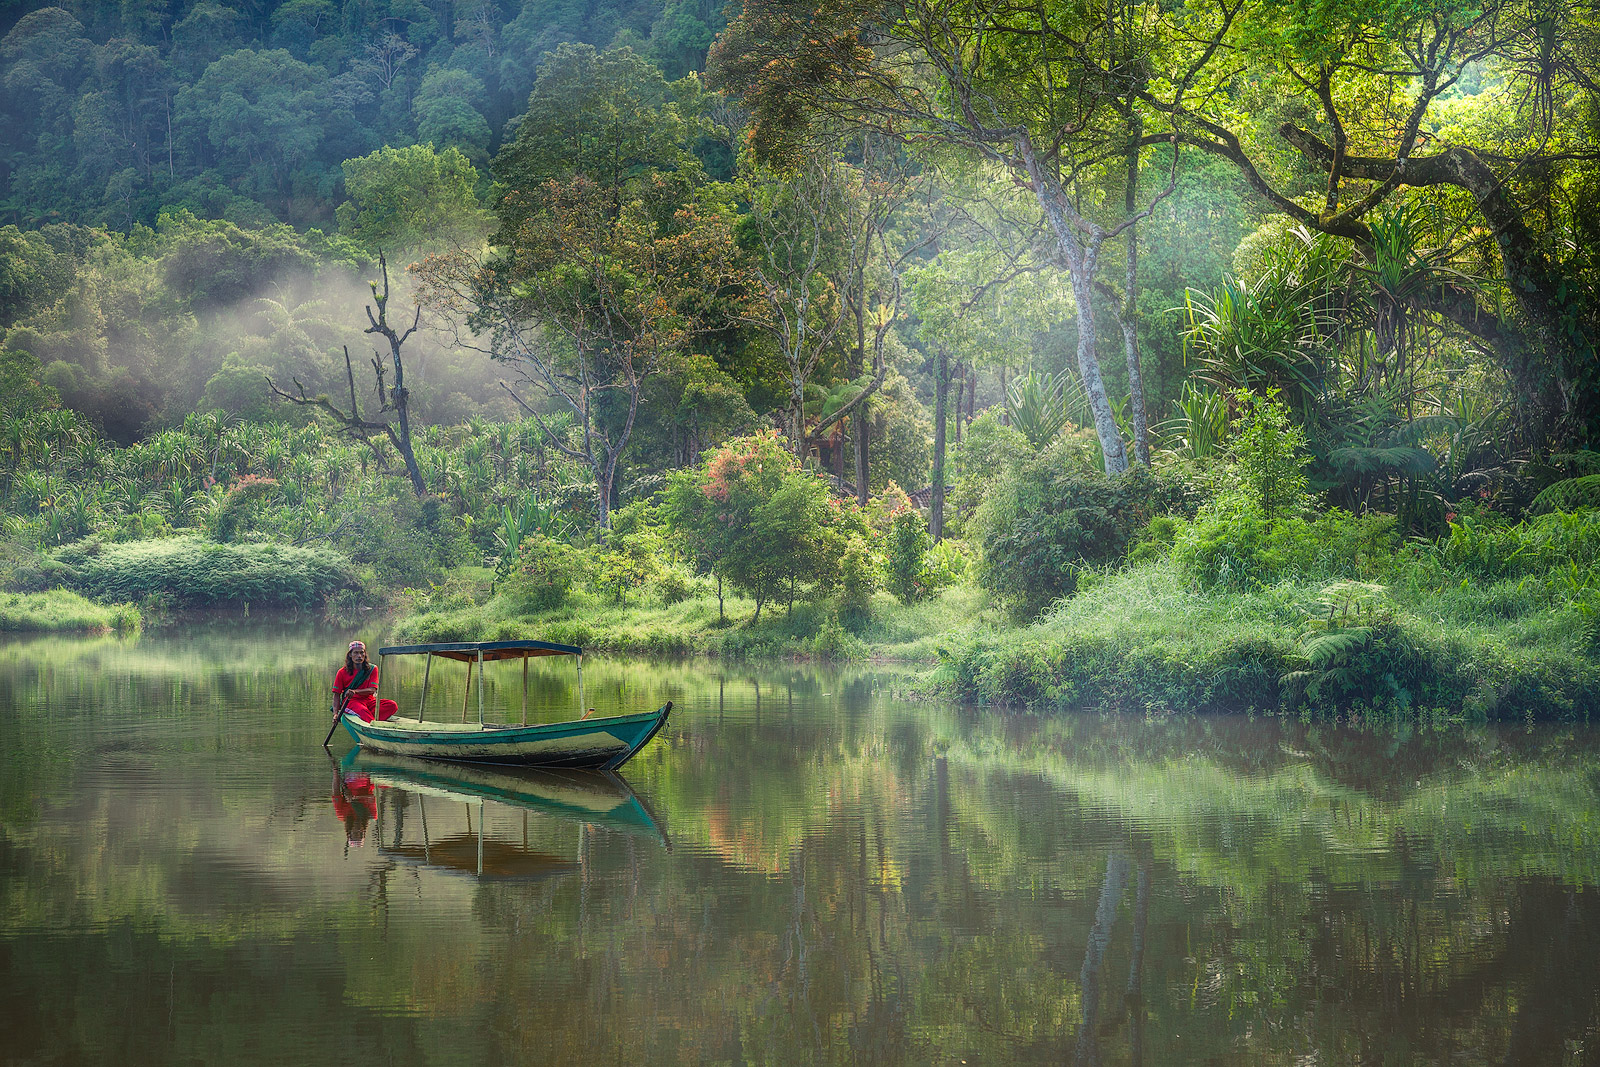 An Indonesian man takes an early morning boat ride on a remote lake.